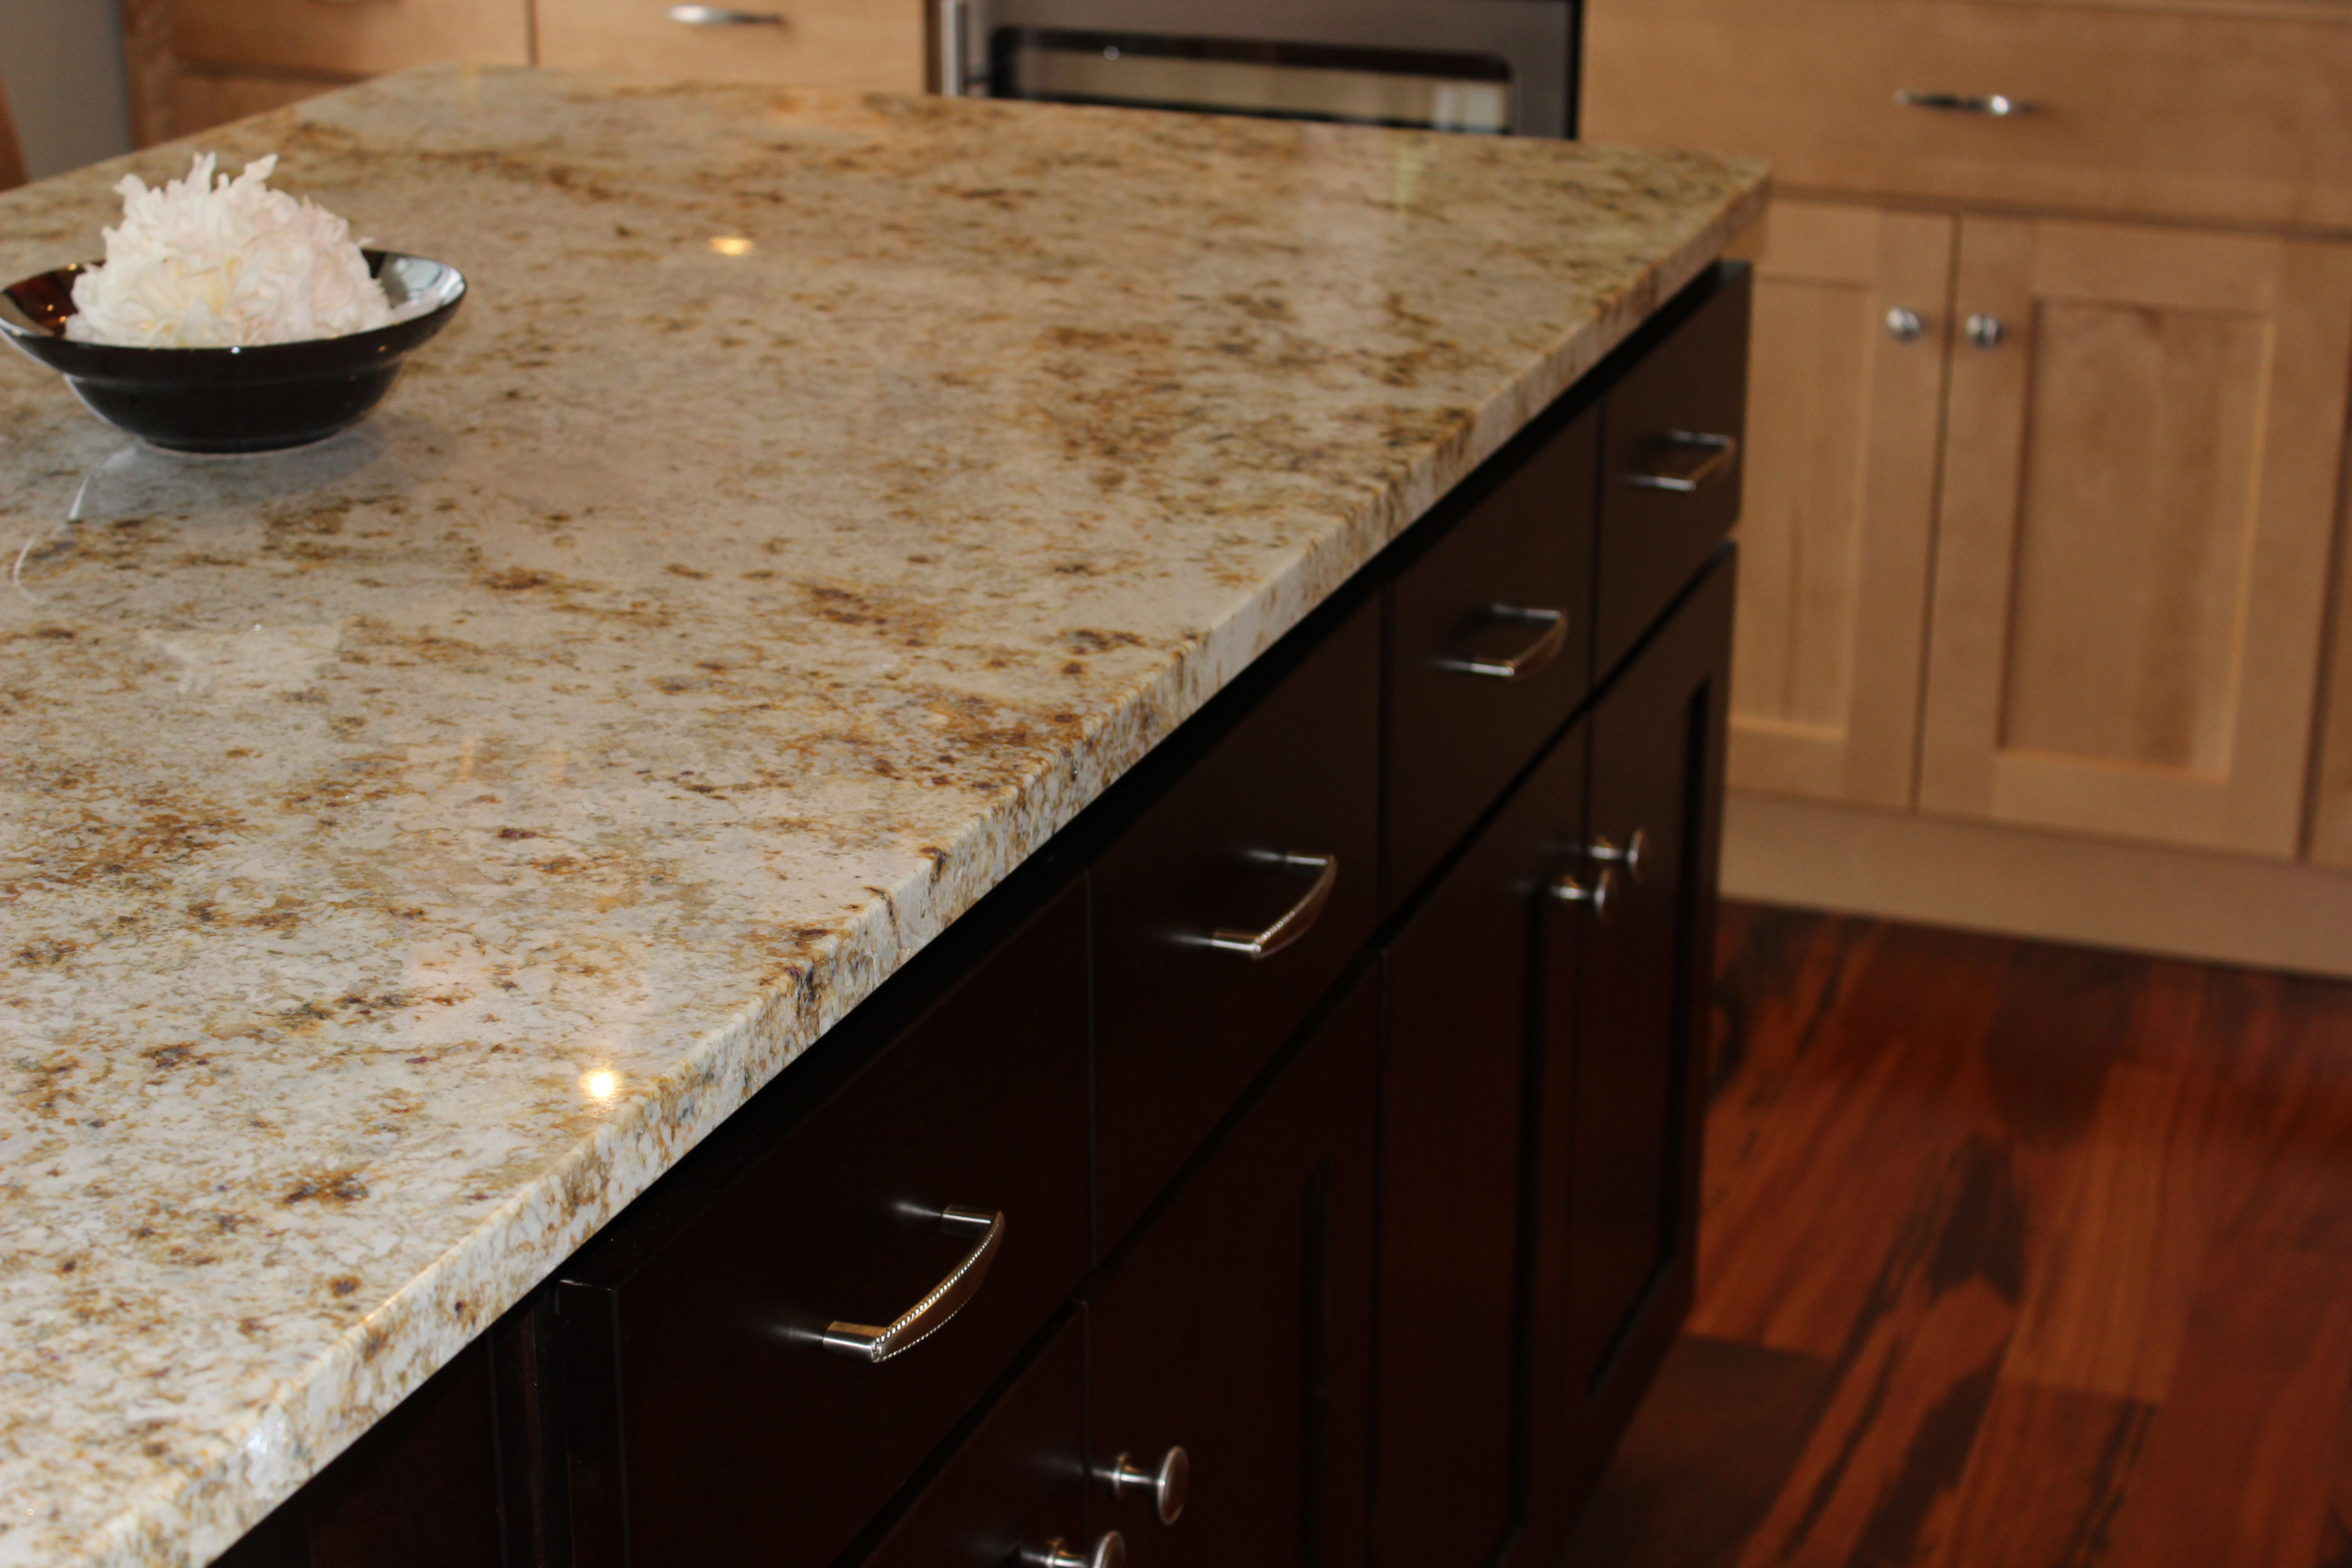 Colonial Gold Granite Most Of The Granite With Gold At The End